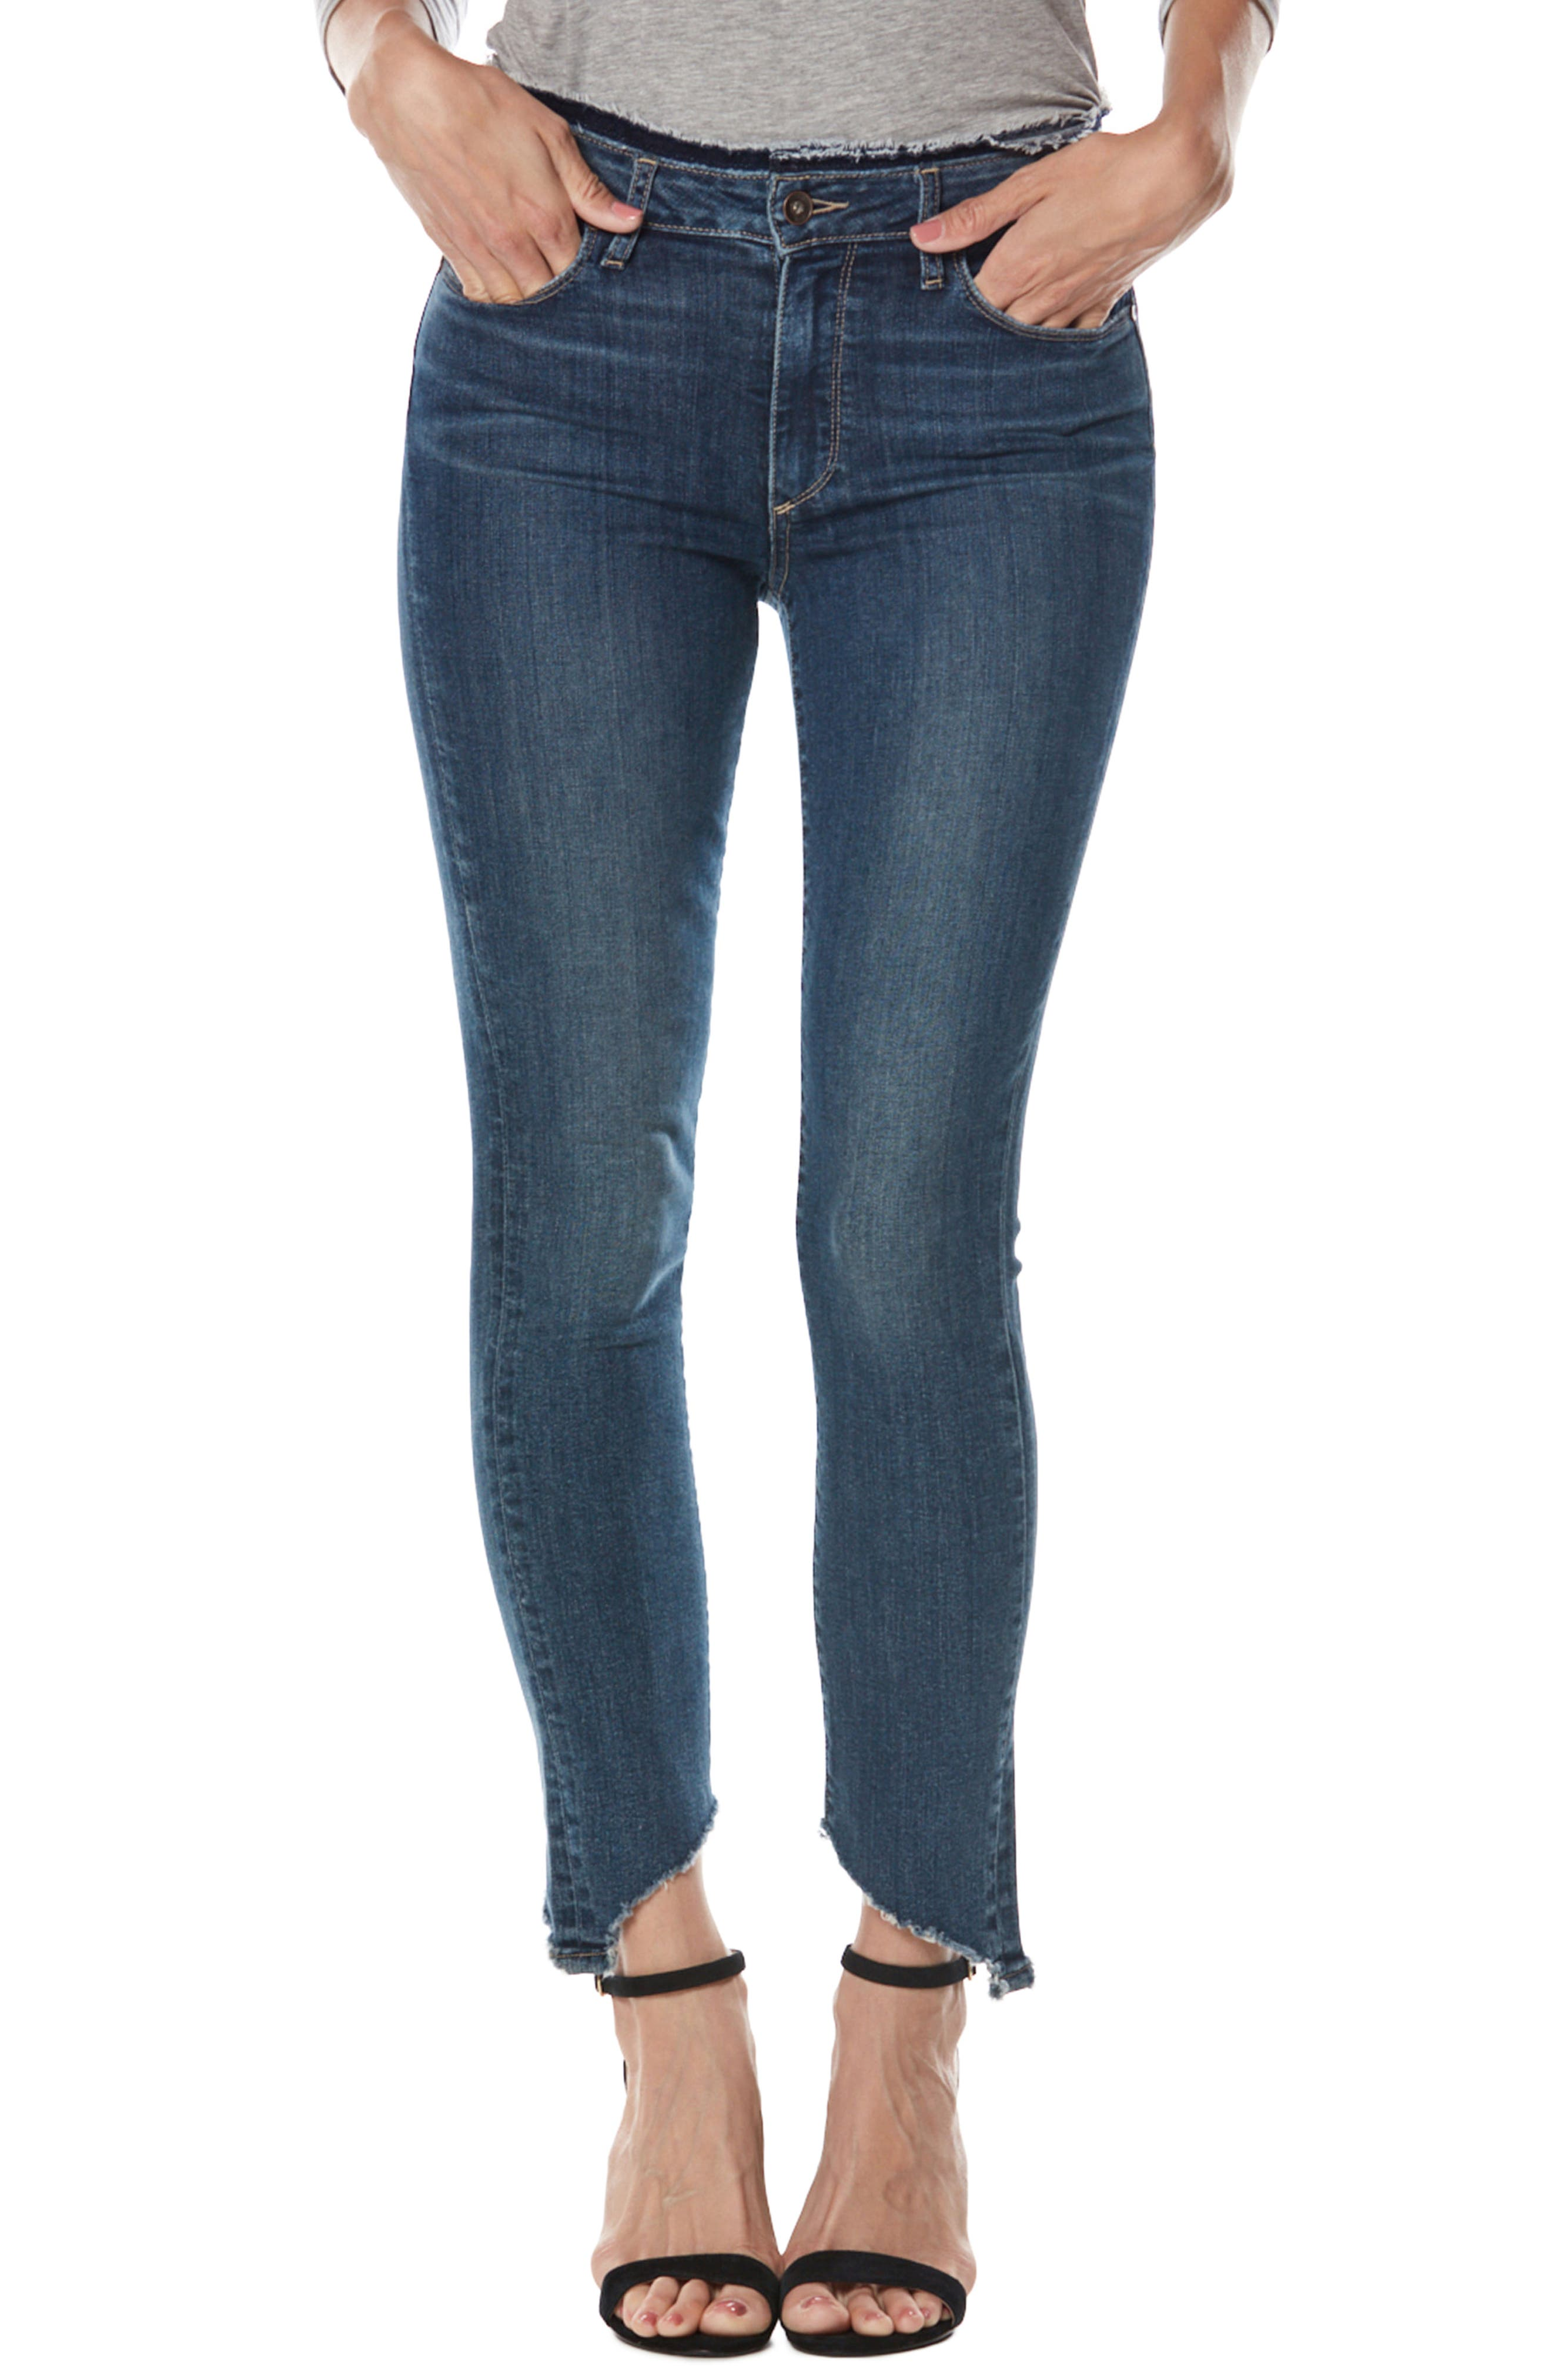 Alternate Image 1 Selected - PAIGE Hoxton High Waist Frayed Hem Ankle Skinny Jeans (Fraya)